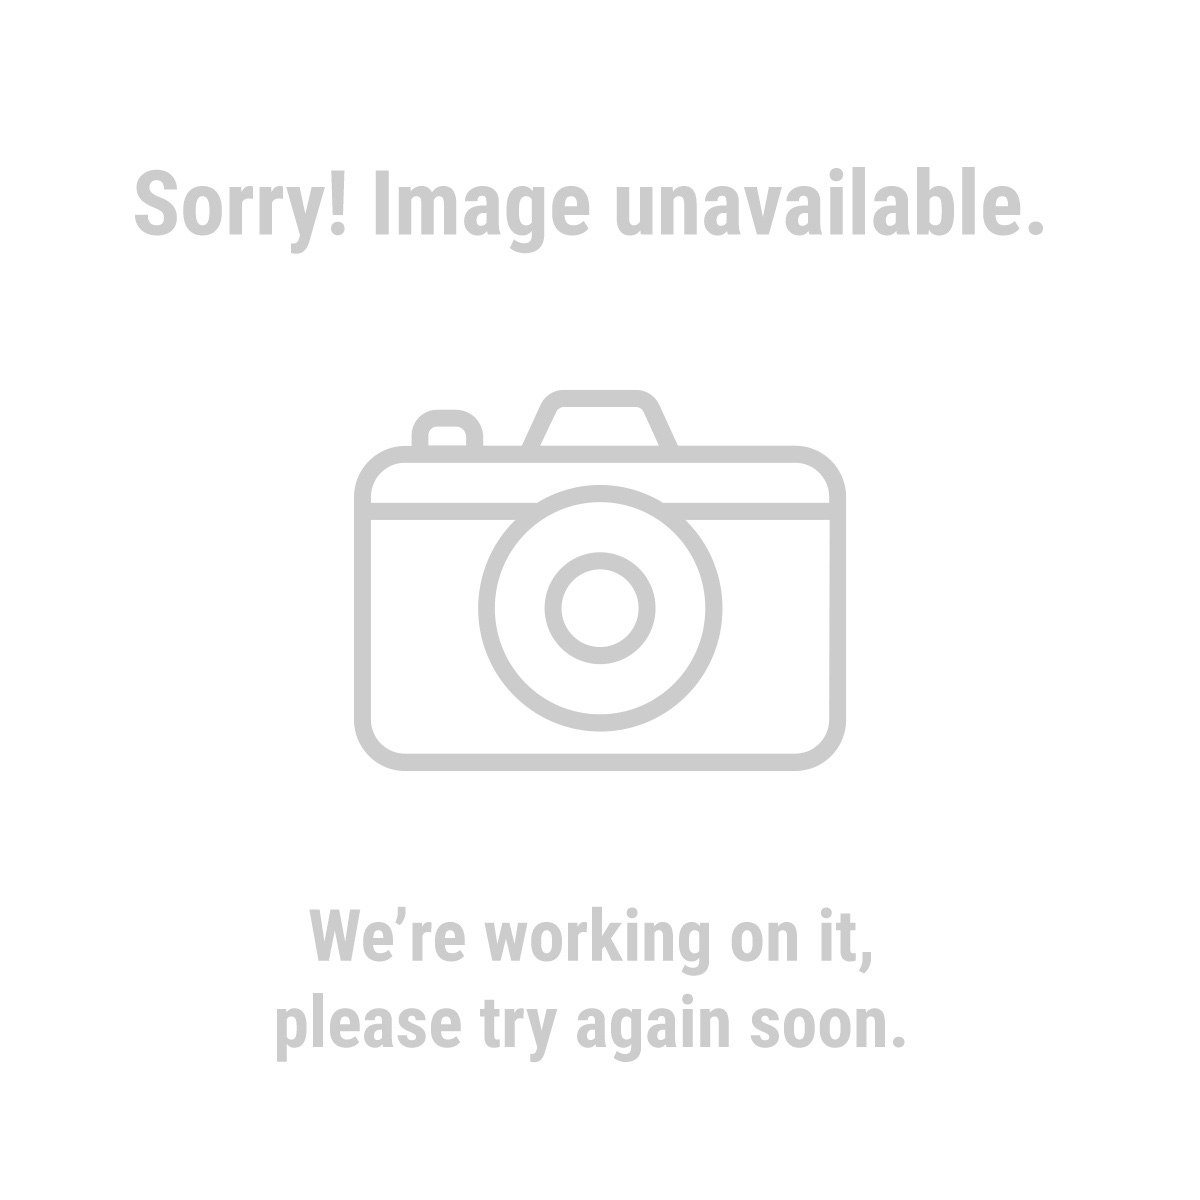 HFT® 60273 50 Ft. x 12 Gauge Outdoor Extension Cord